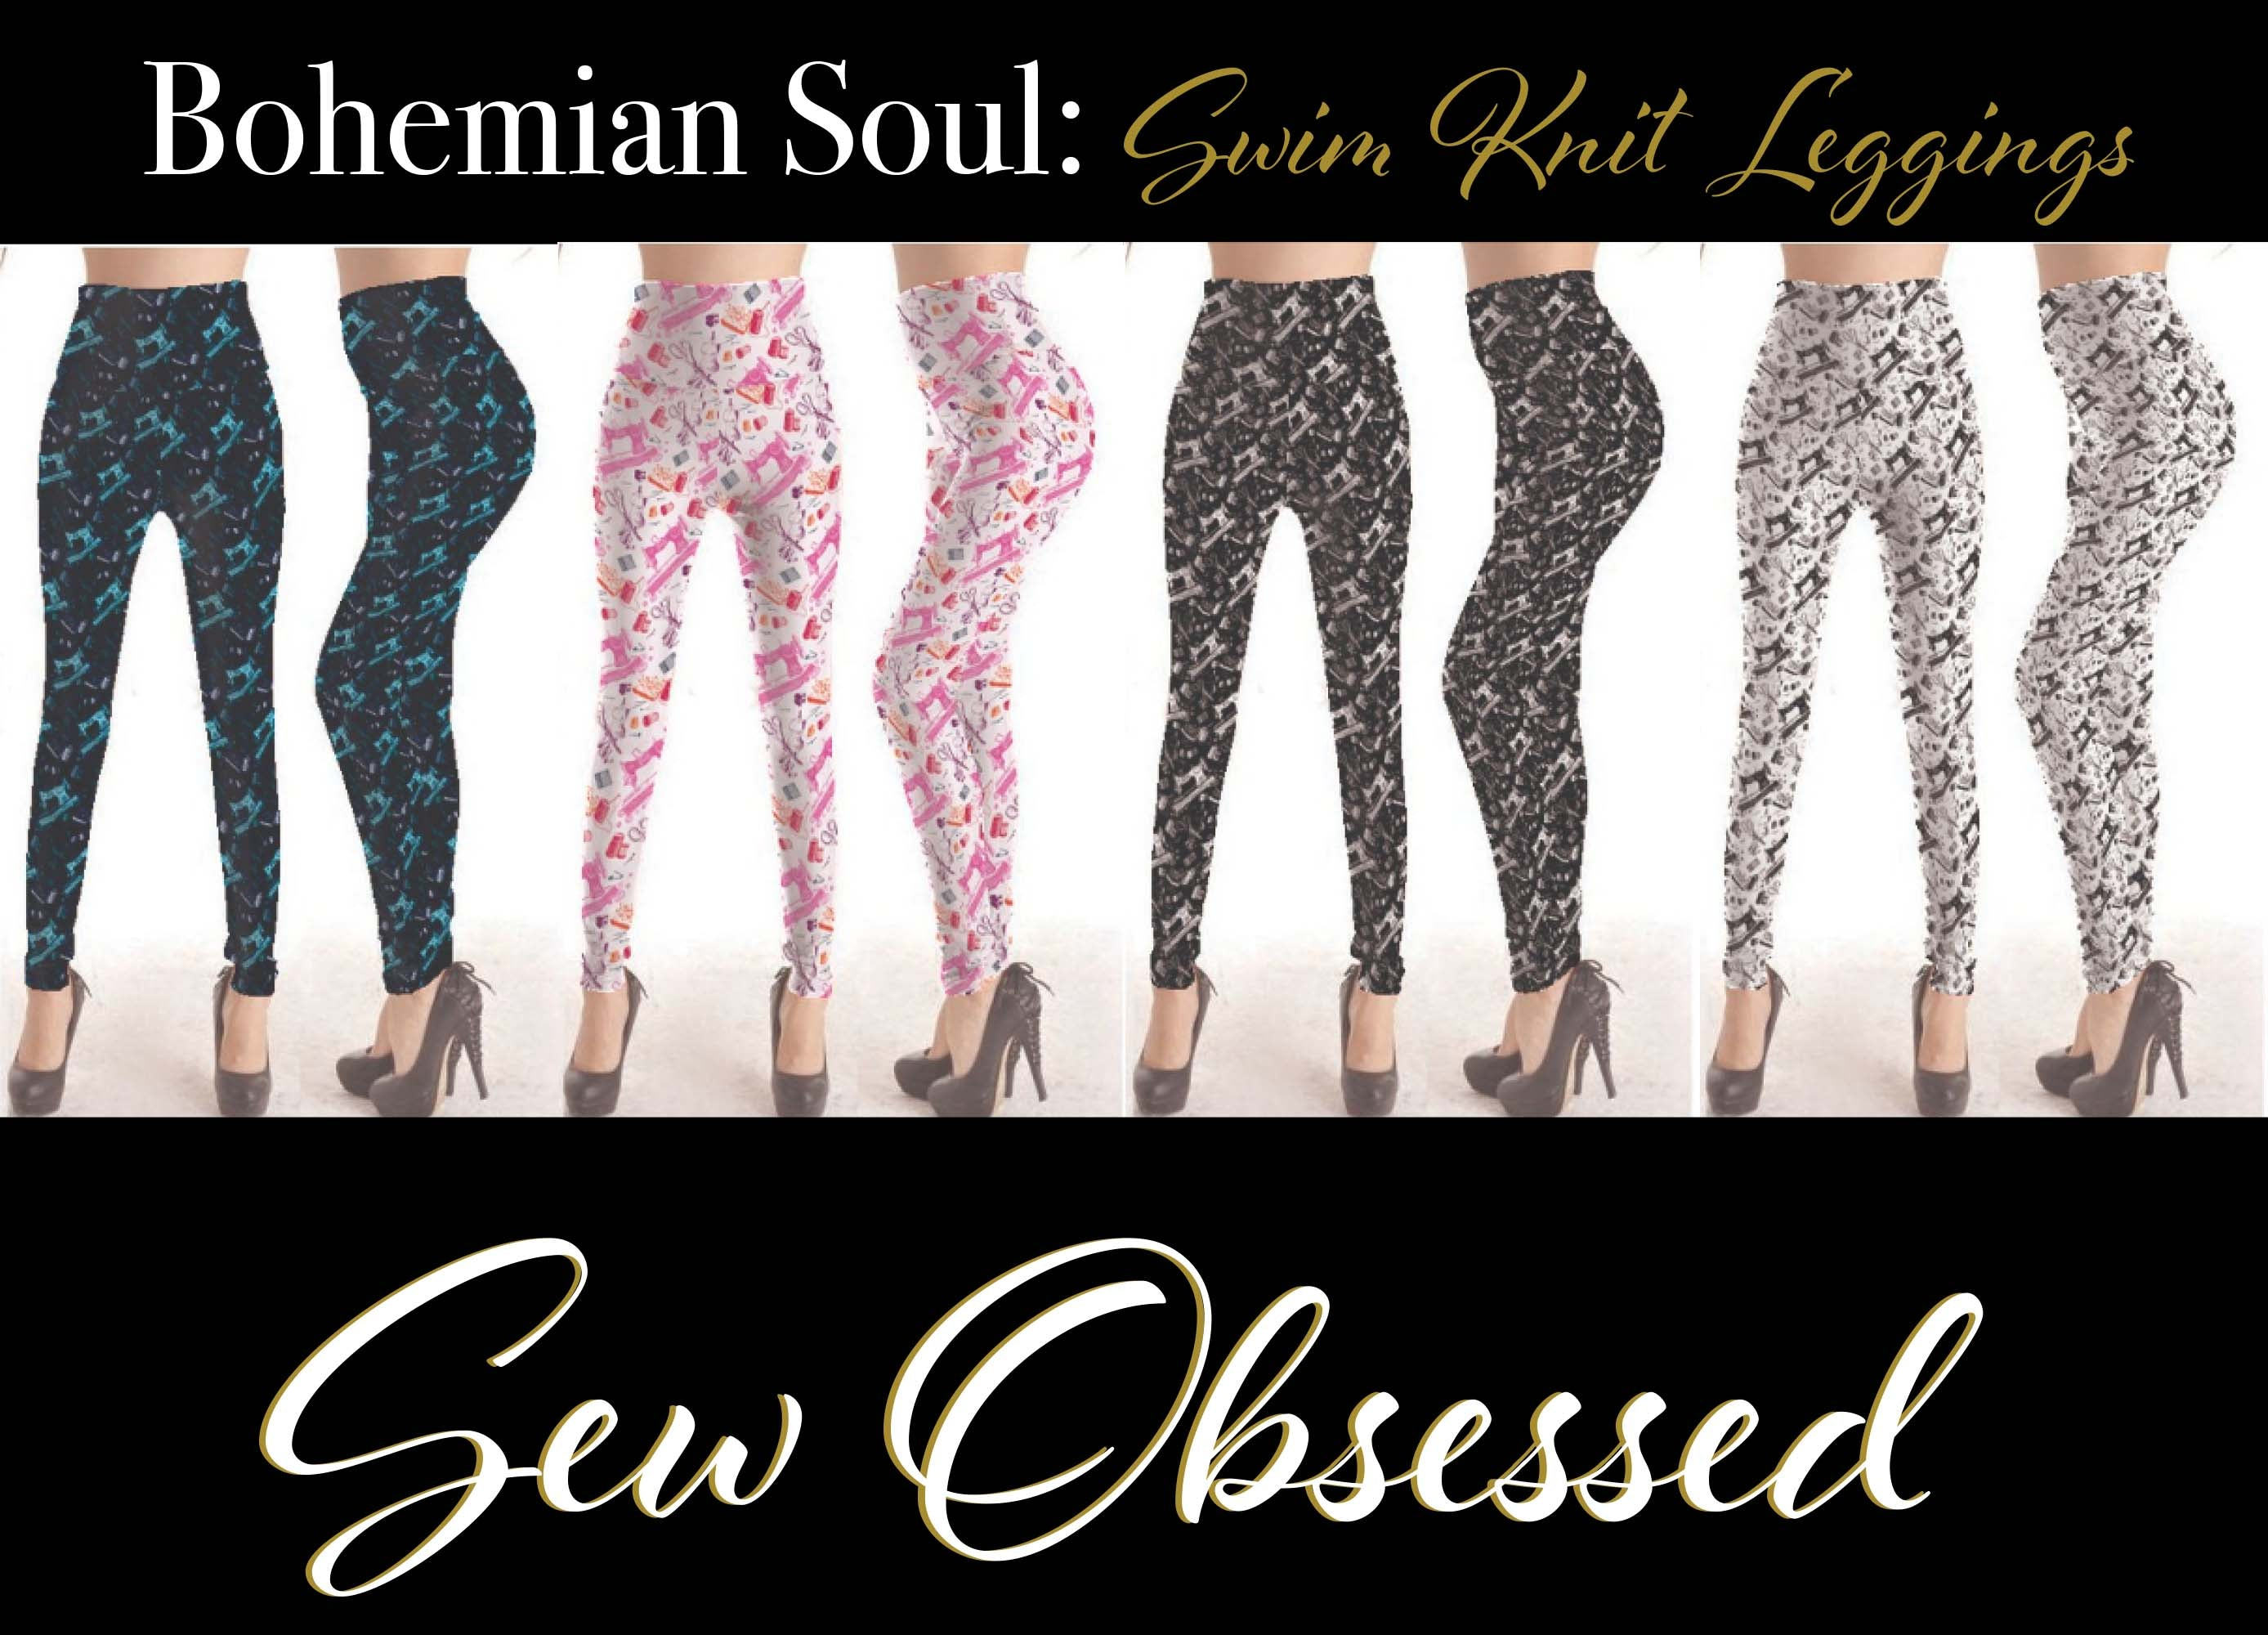 Bohemian Soul Swim - Sew Obsessed in Black